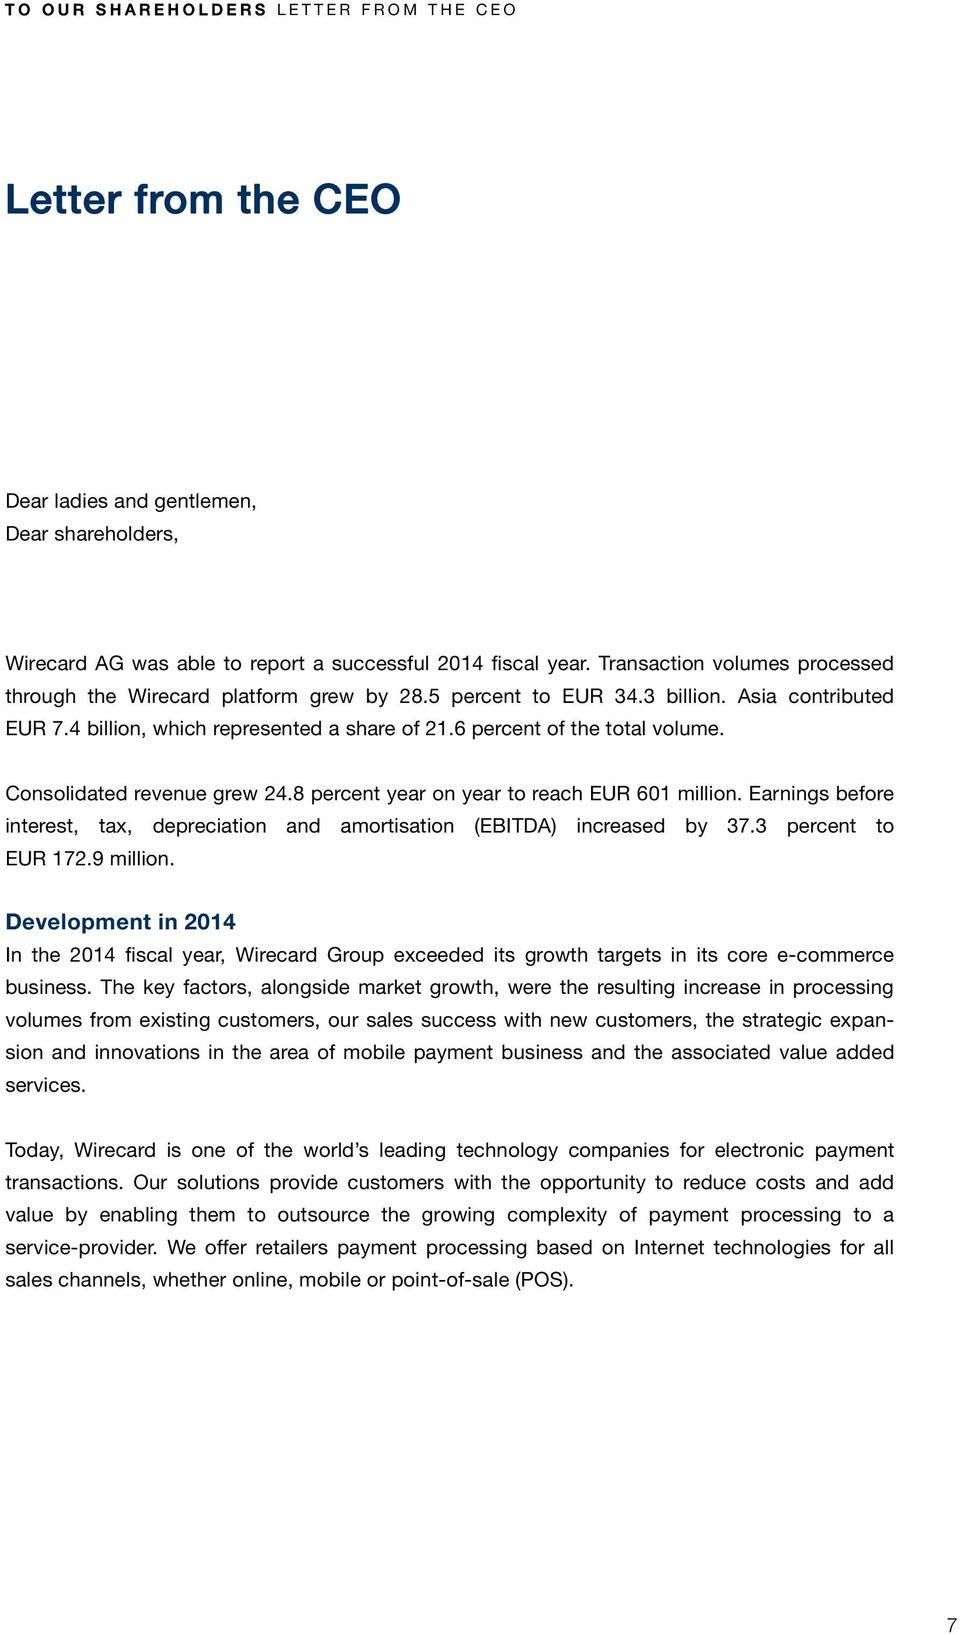 Consolidated revenue grew 24.8 percent year on year to reach EUR 601 million. Earnings before interest, tax, depreciation and amortisation (EBITDA) increased by 37.3 percent to EUR 172.9 million.